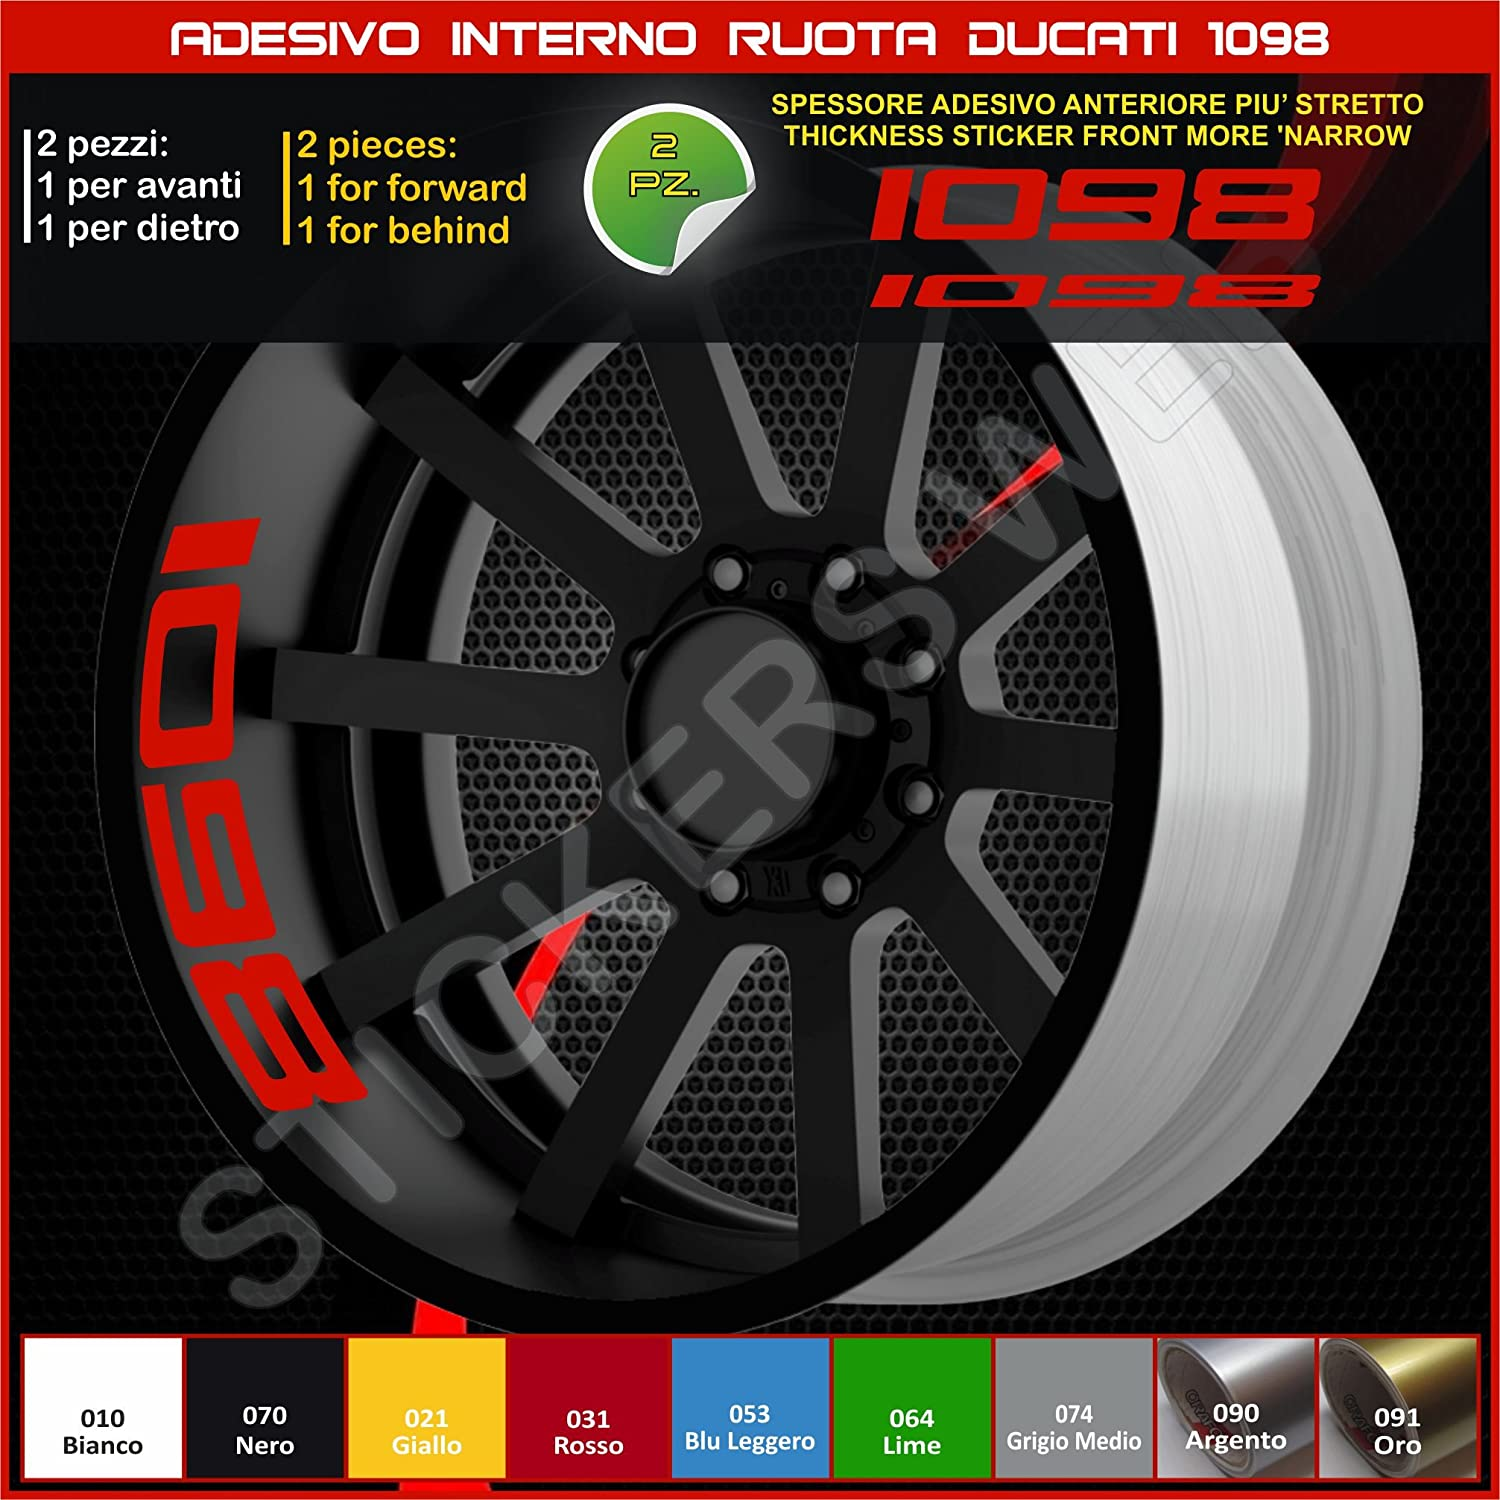 0215 031 Rosso Ducati 1098/Panigale Internal Wheels Stripes Circles Stickers Decals Strip Rims Cod